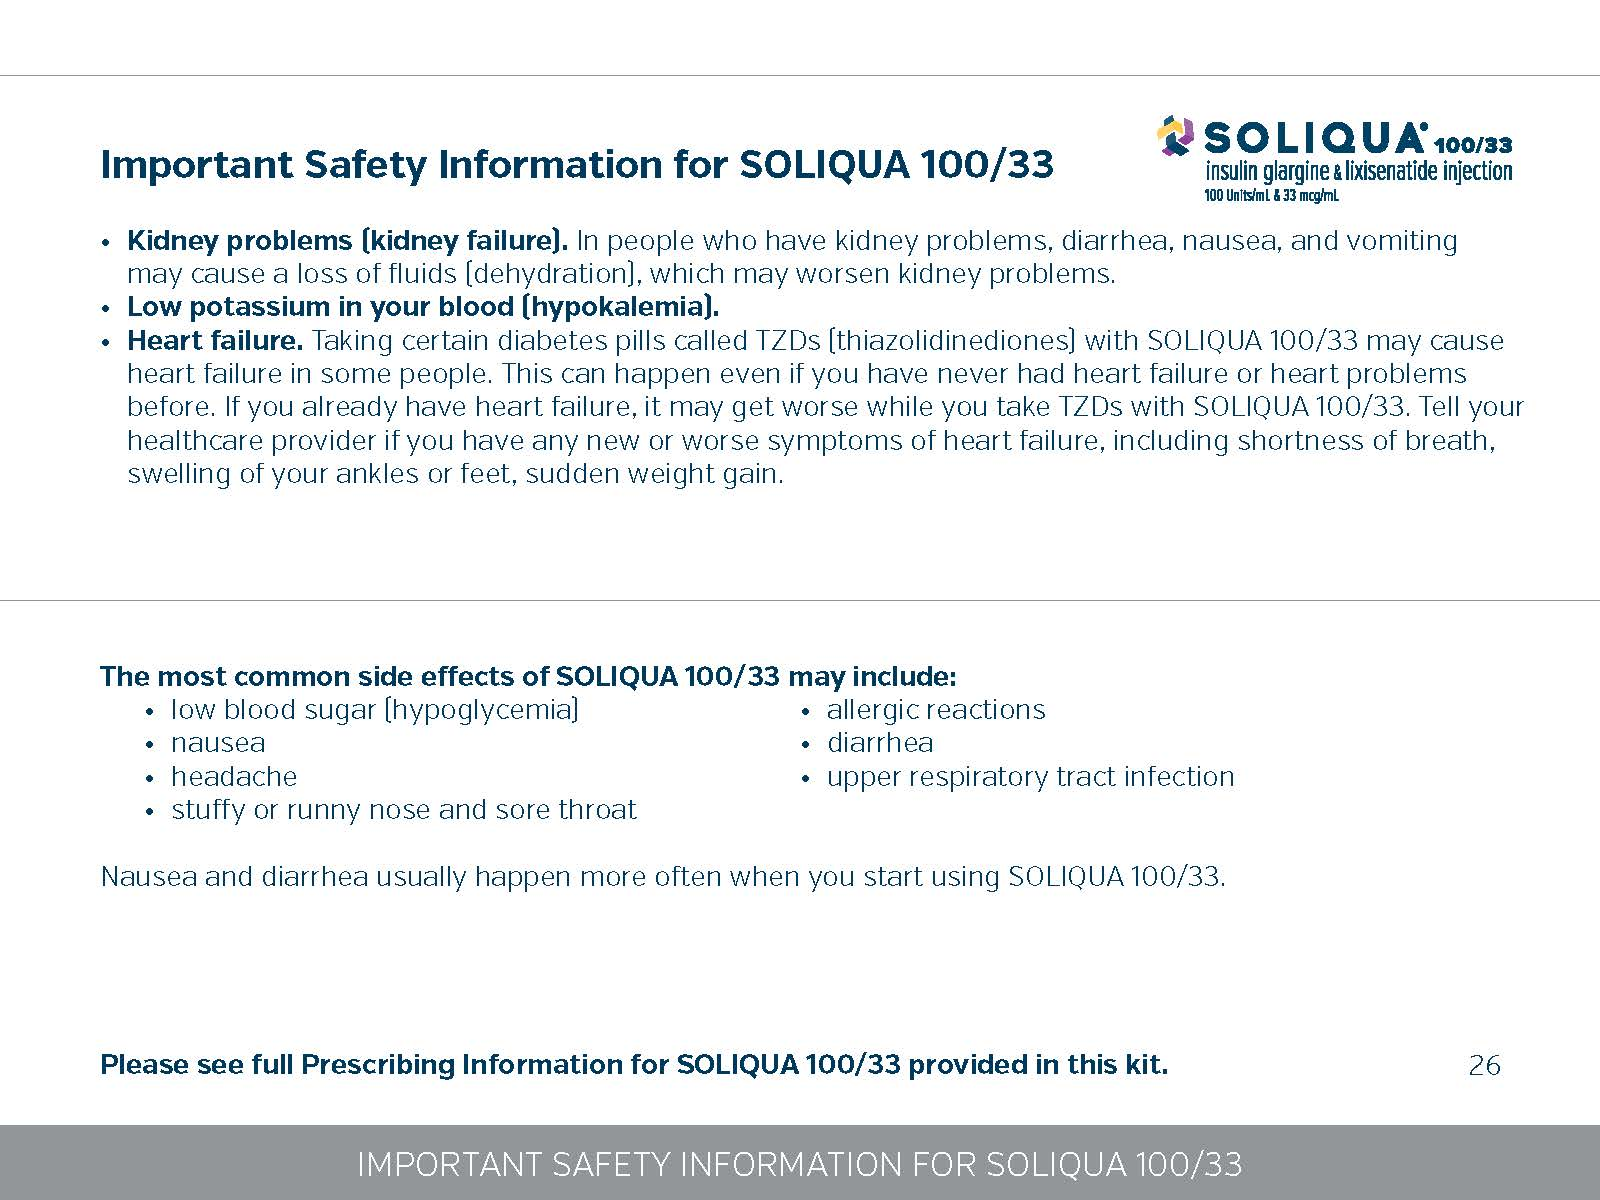 SAUS.SQA.17.04.1224_Starter_Kit_Core_Brochure_v24 copy 2_Page_26.jpg